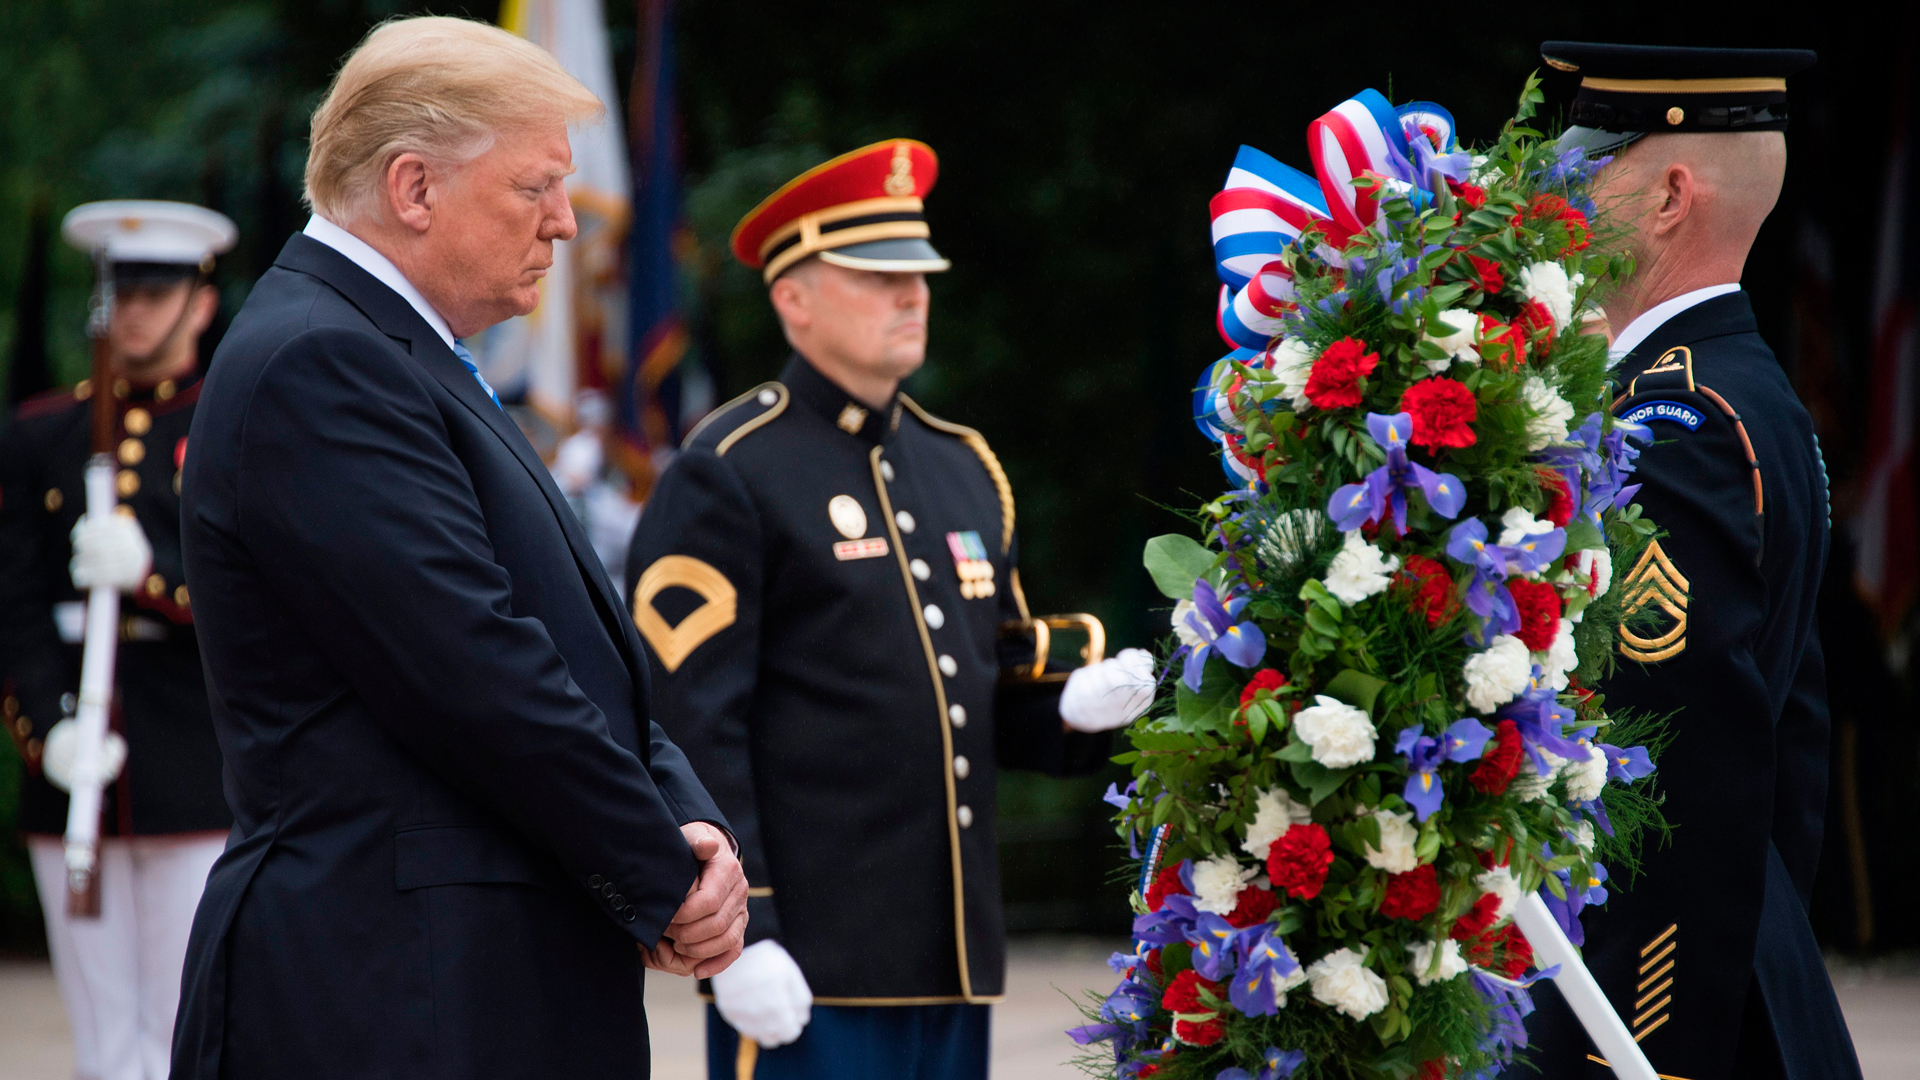 President Donald Trump marks Memorial Day by laying a wreath at the Tomb of the Unknown Soldier at Arlington National Cemetery in Arlington, Virginia, on May 28, 2018 (Credit: Jim Watson/AFP/Getty Images)